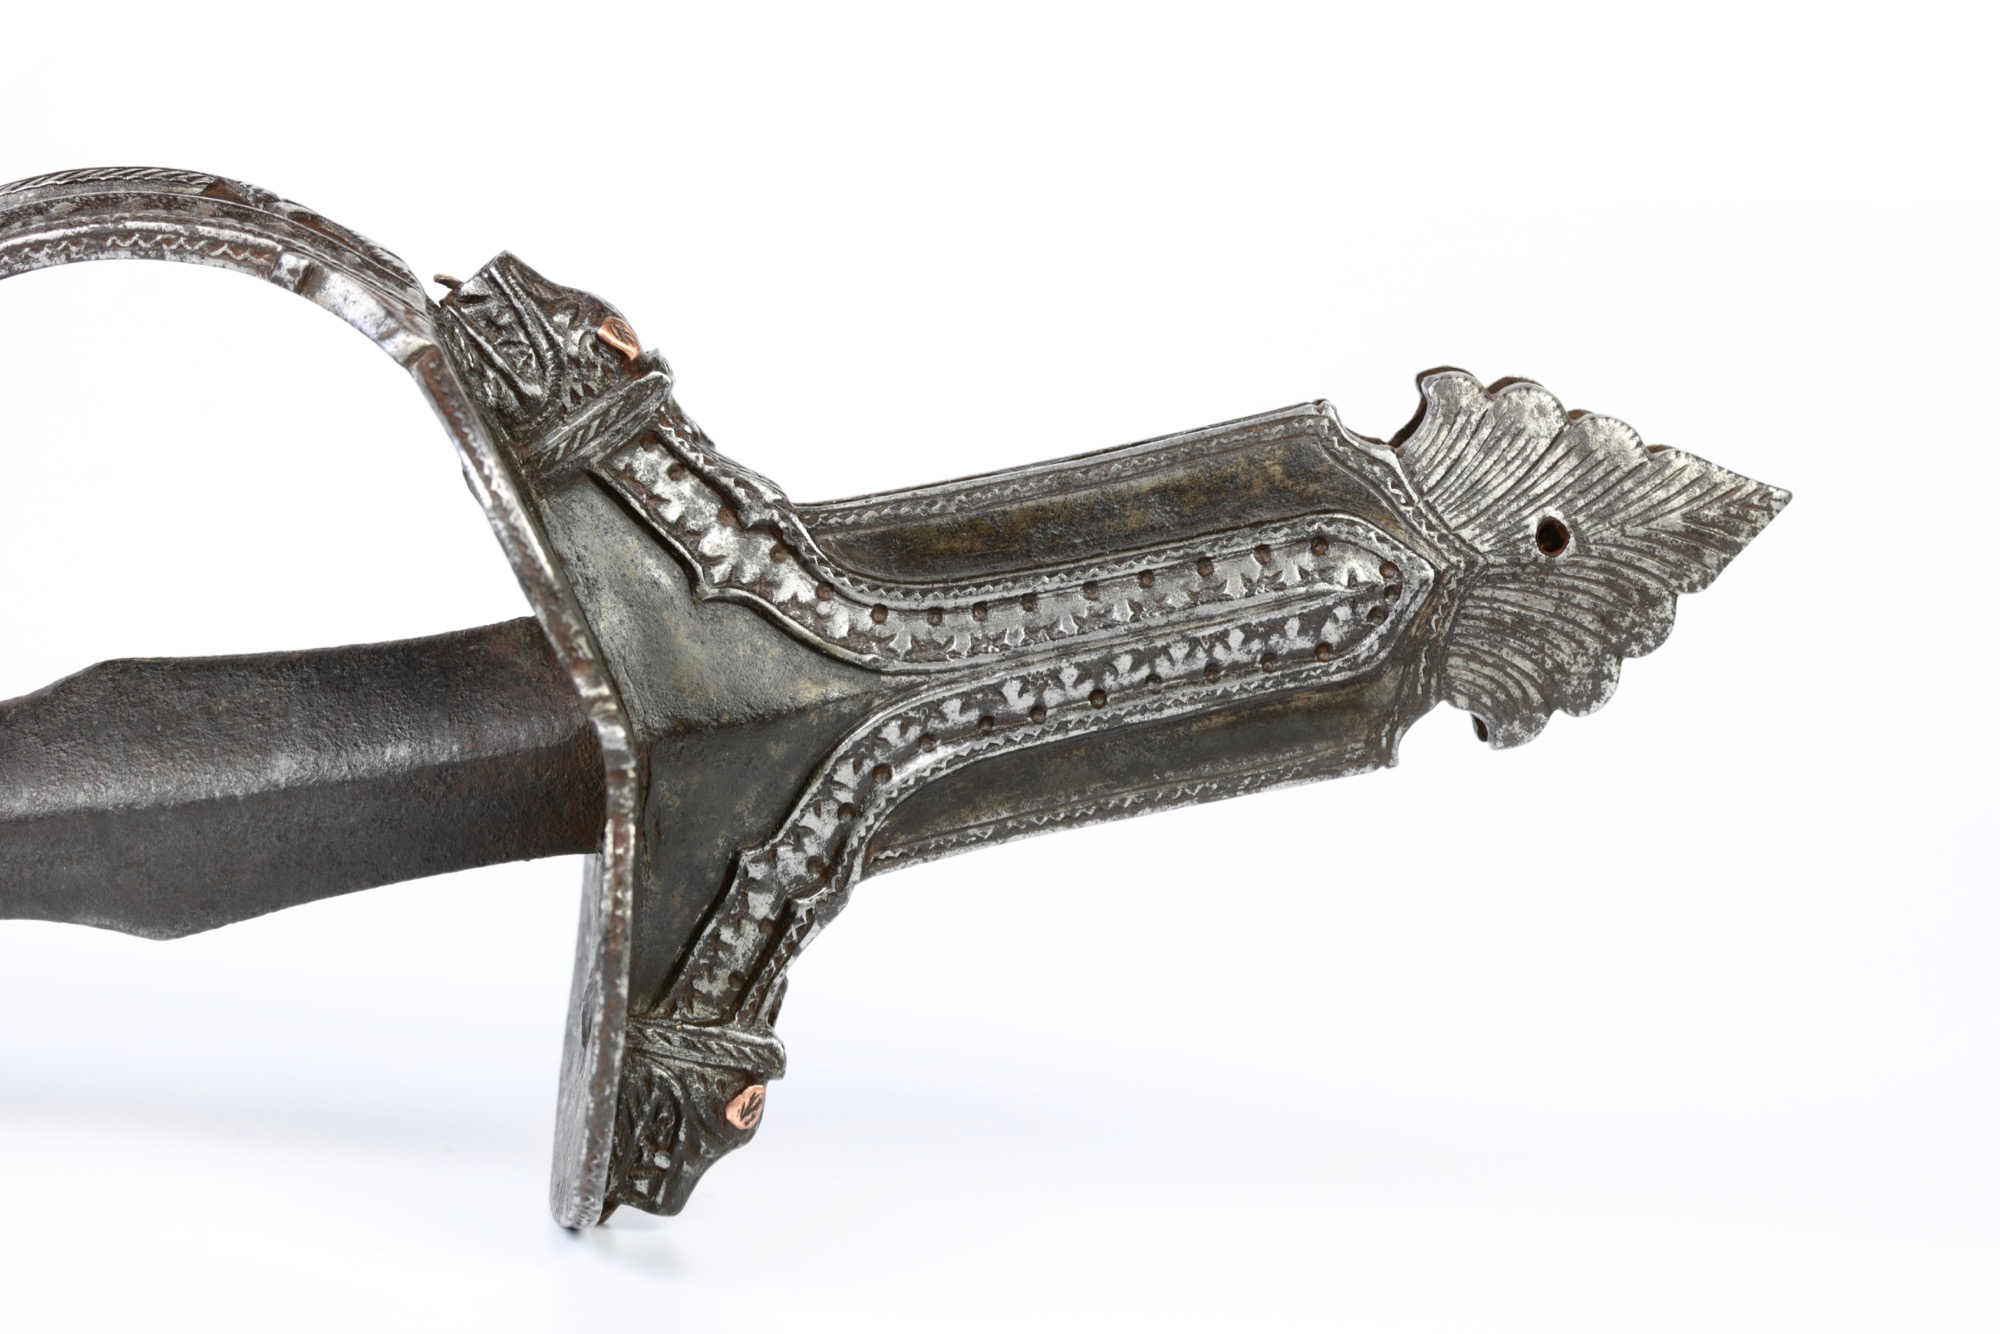 Indian Khanda hilt in chiseled iron